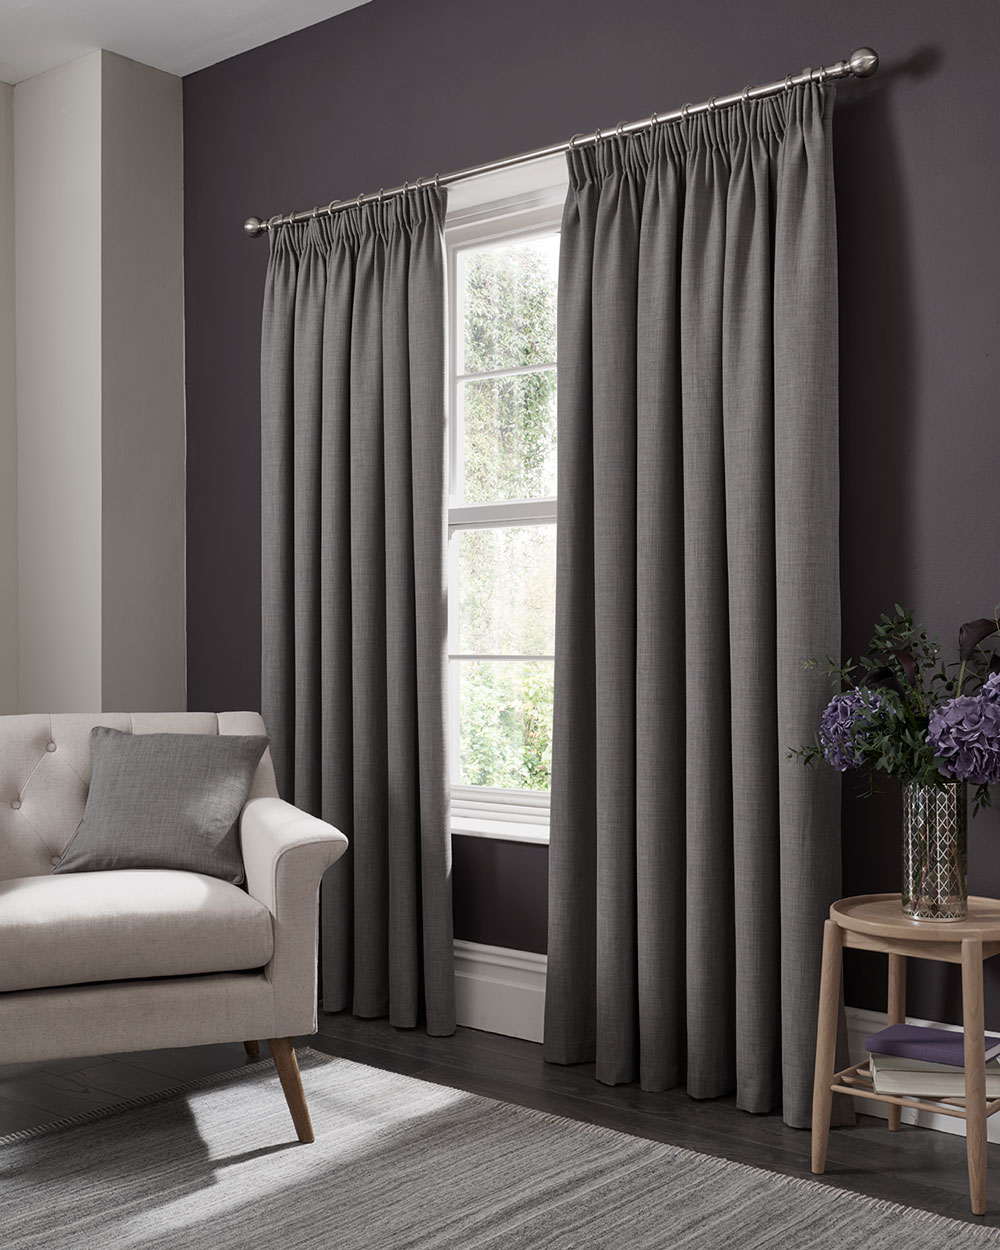 Studio G Elba Pencil Pleat Curtains  Grey  Ready Made Curtains - Product code: M1105/02/46X5